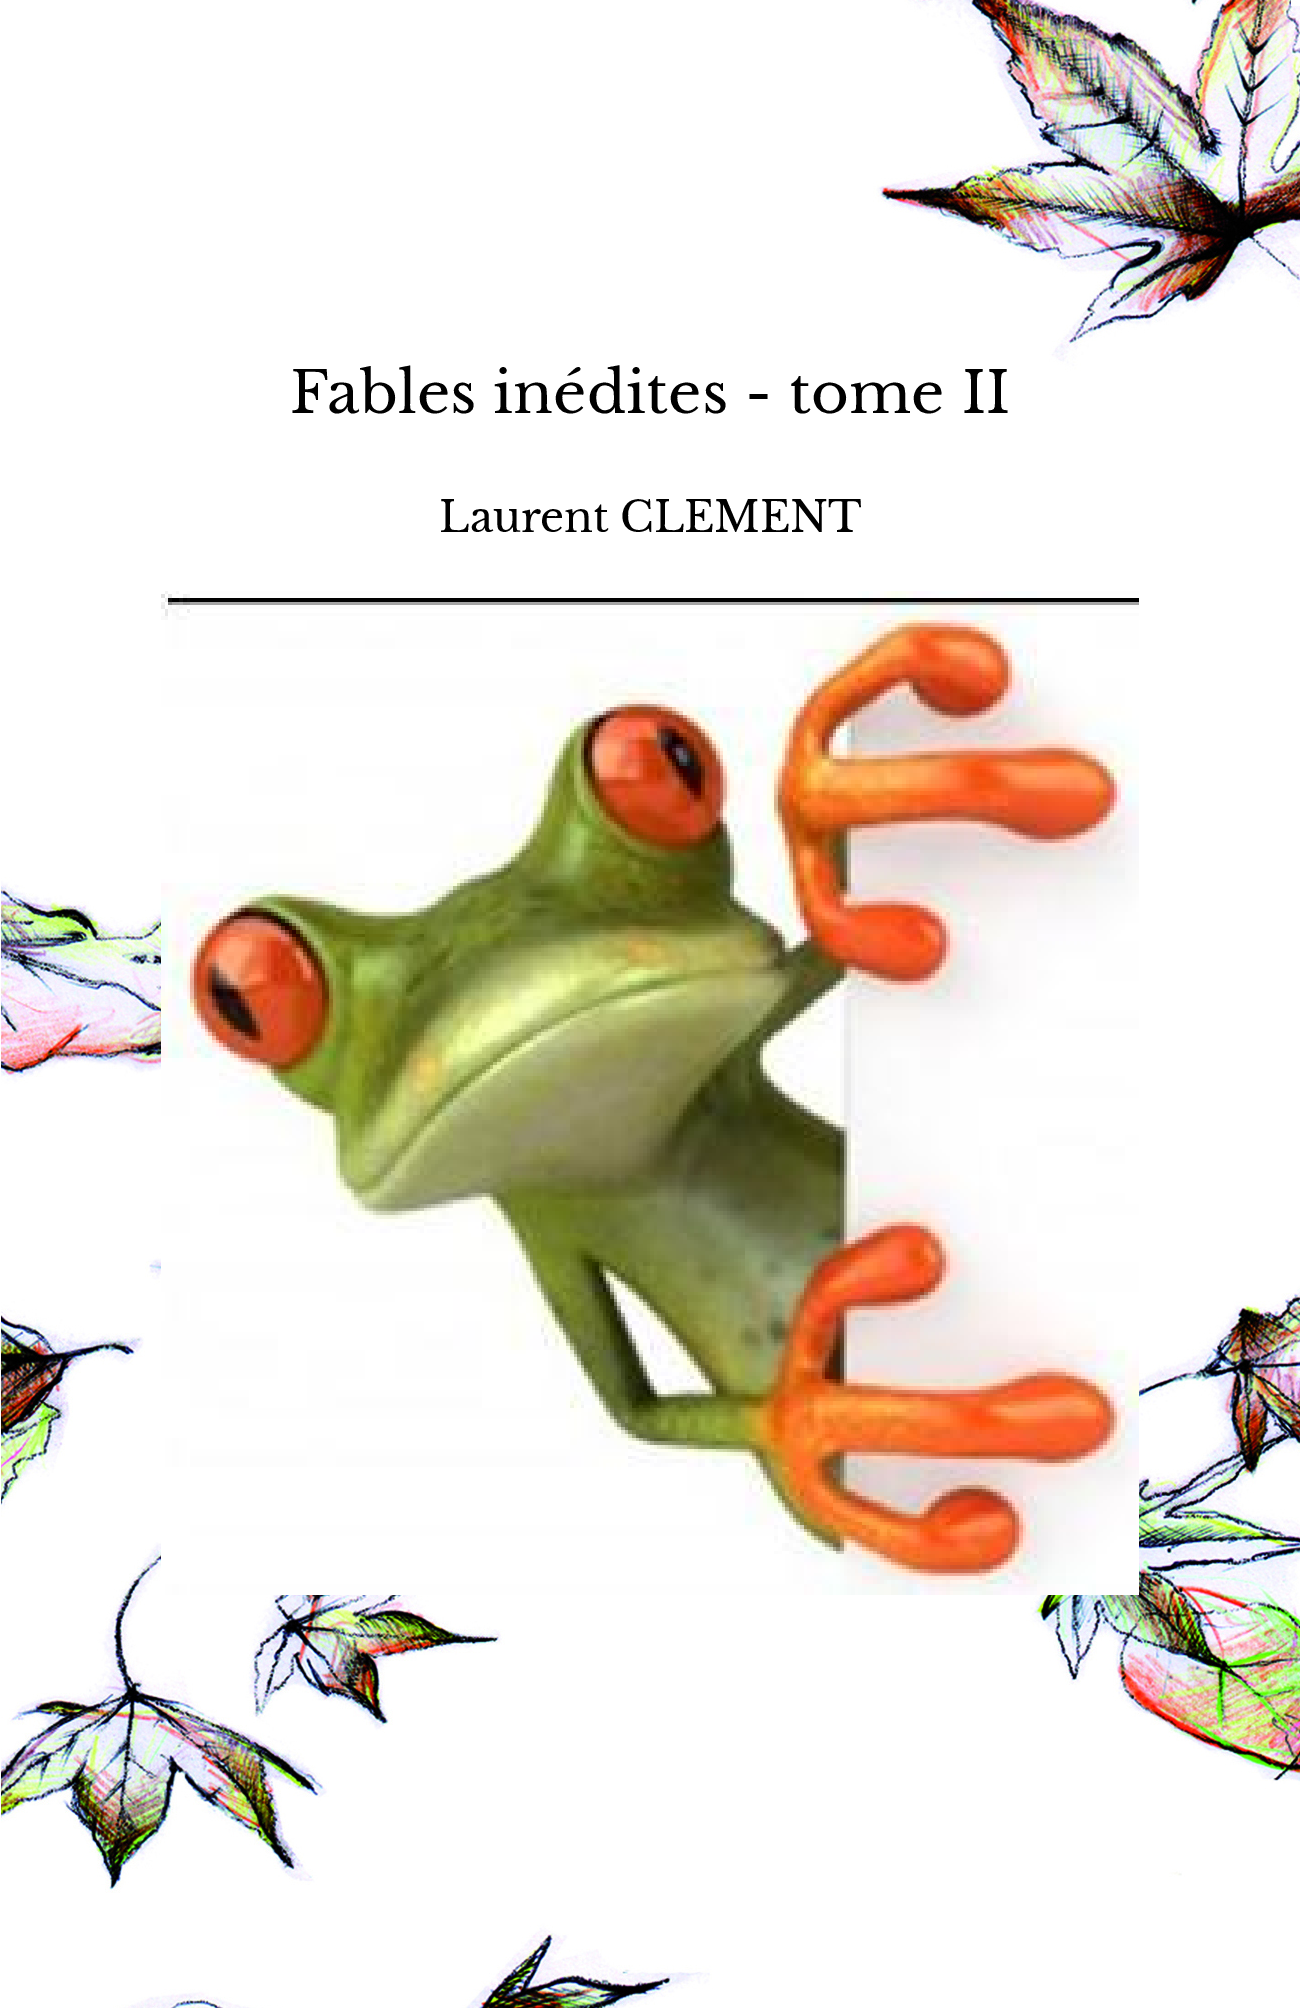 Fables inédites - tome II